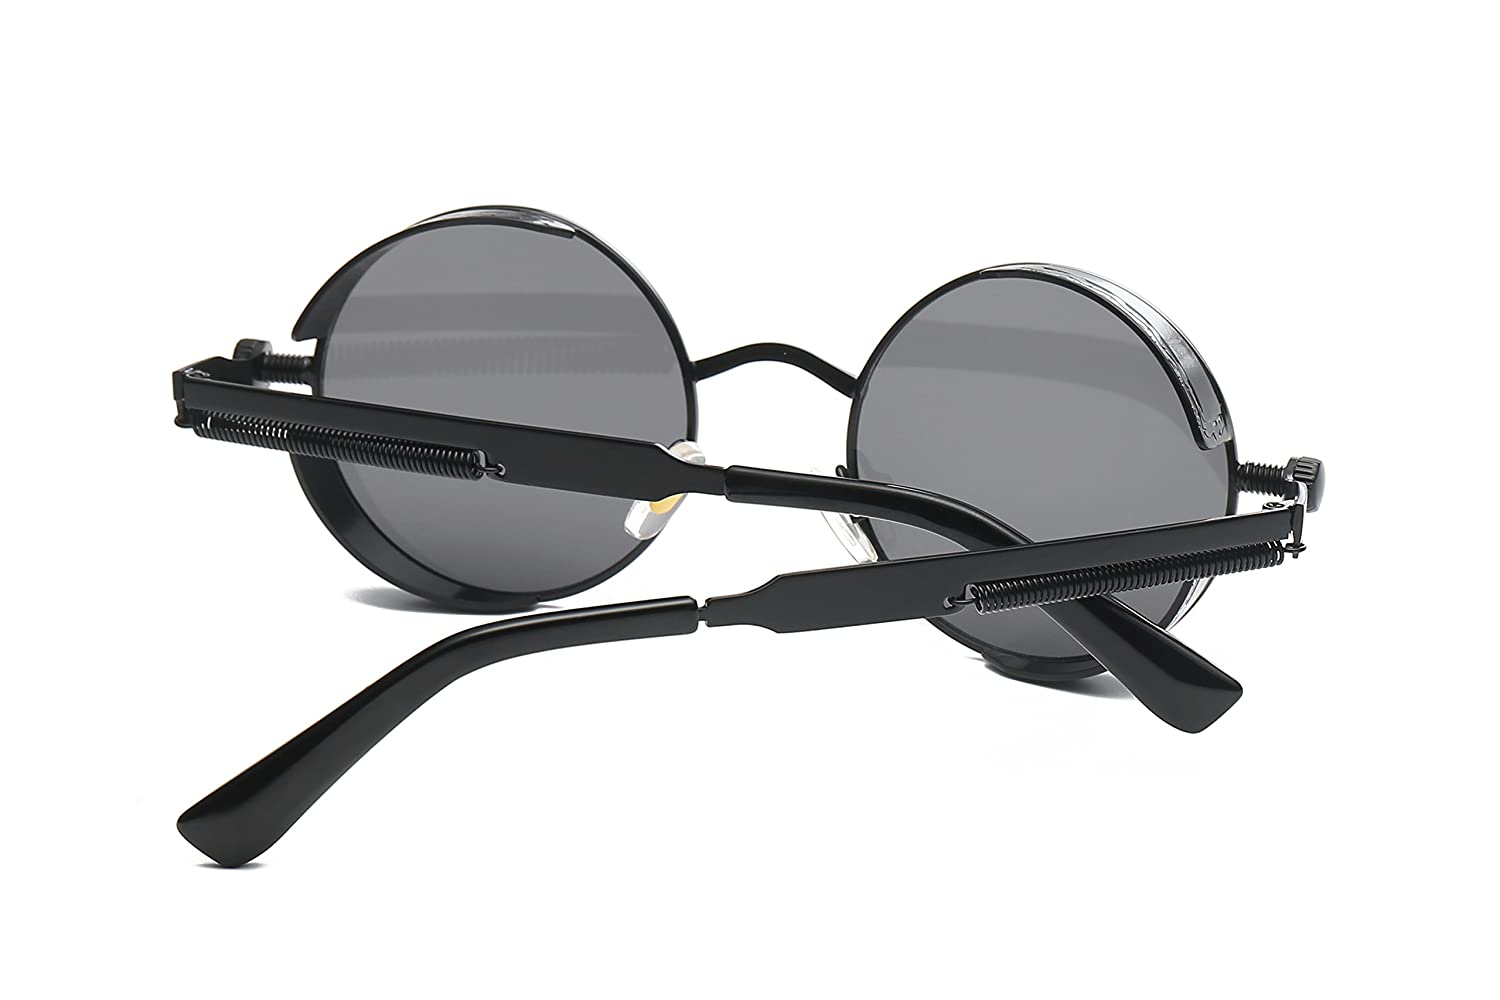 6c581fe9d35 Amazon.com  Dollger Gothic Steampunk Black Round Glasses Metal Frame  Sunglasses  Clothing